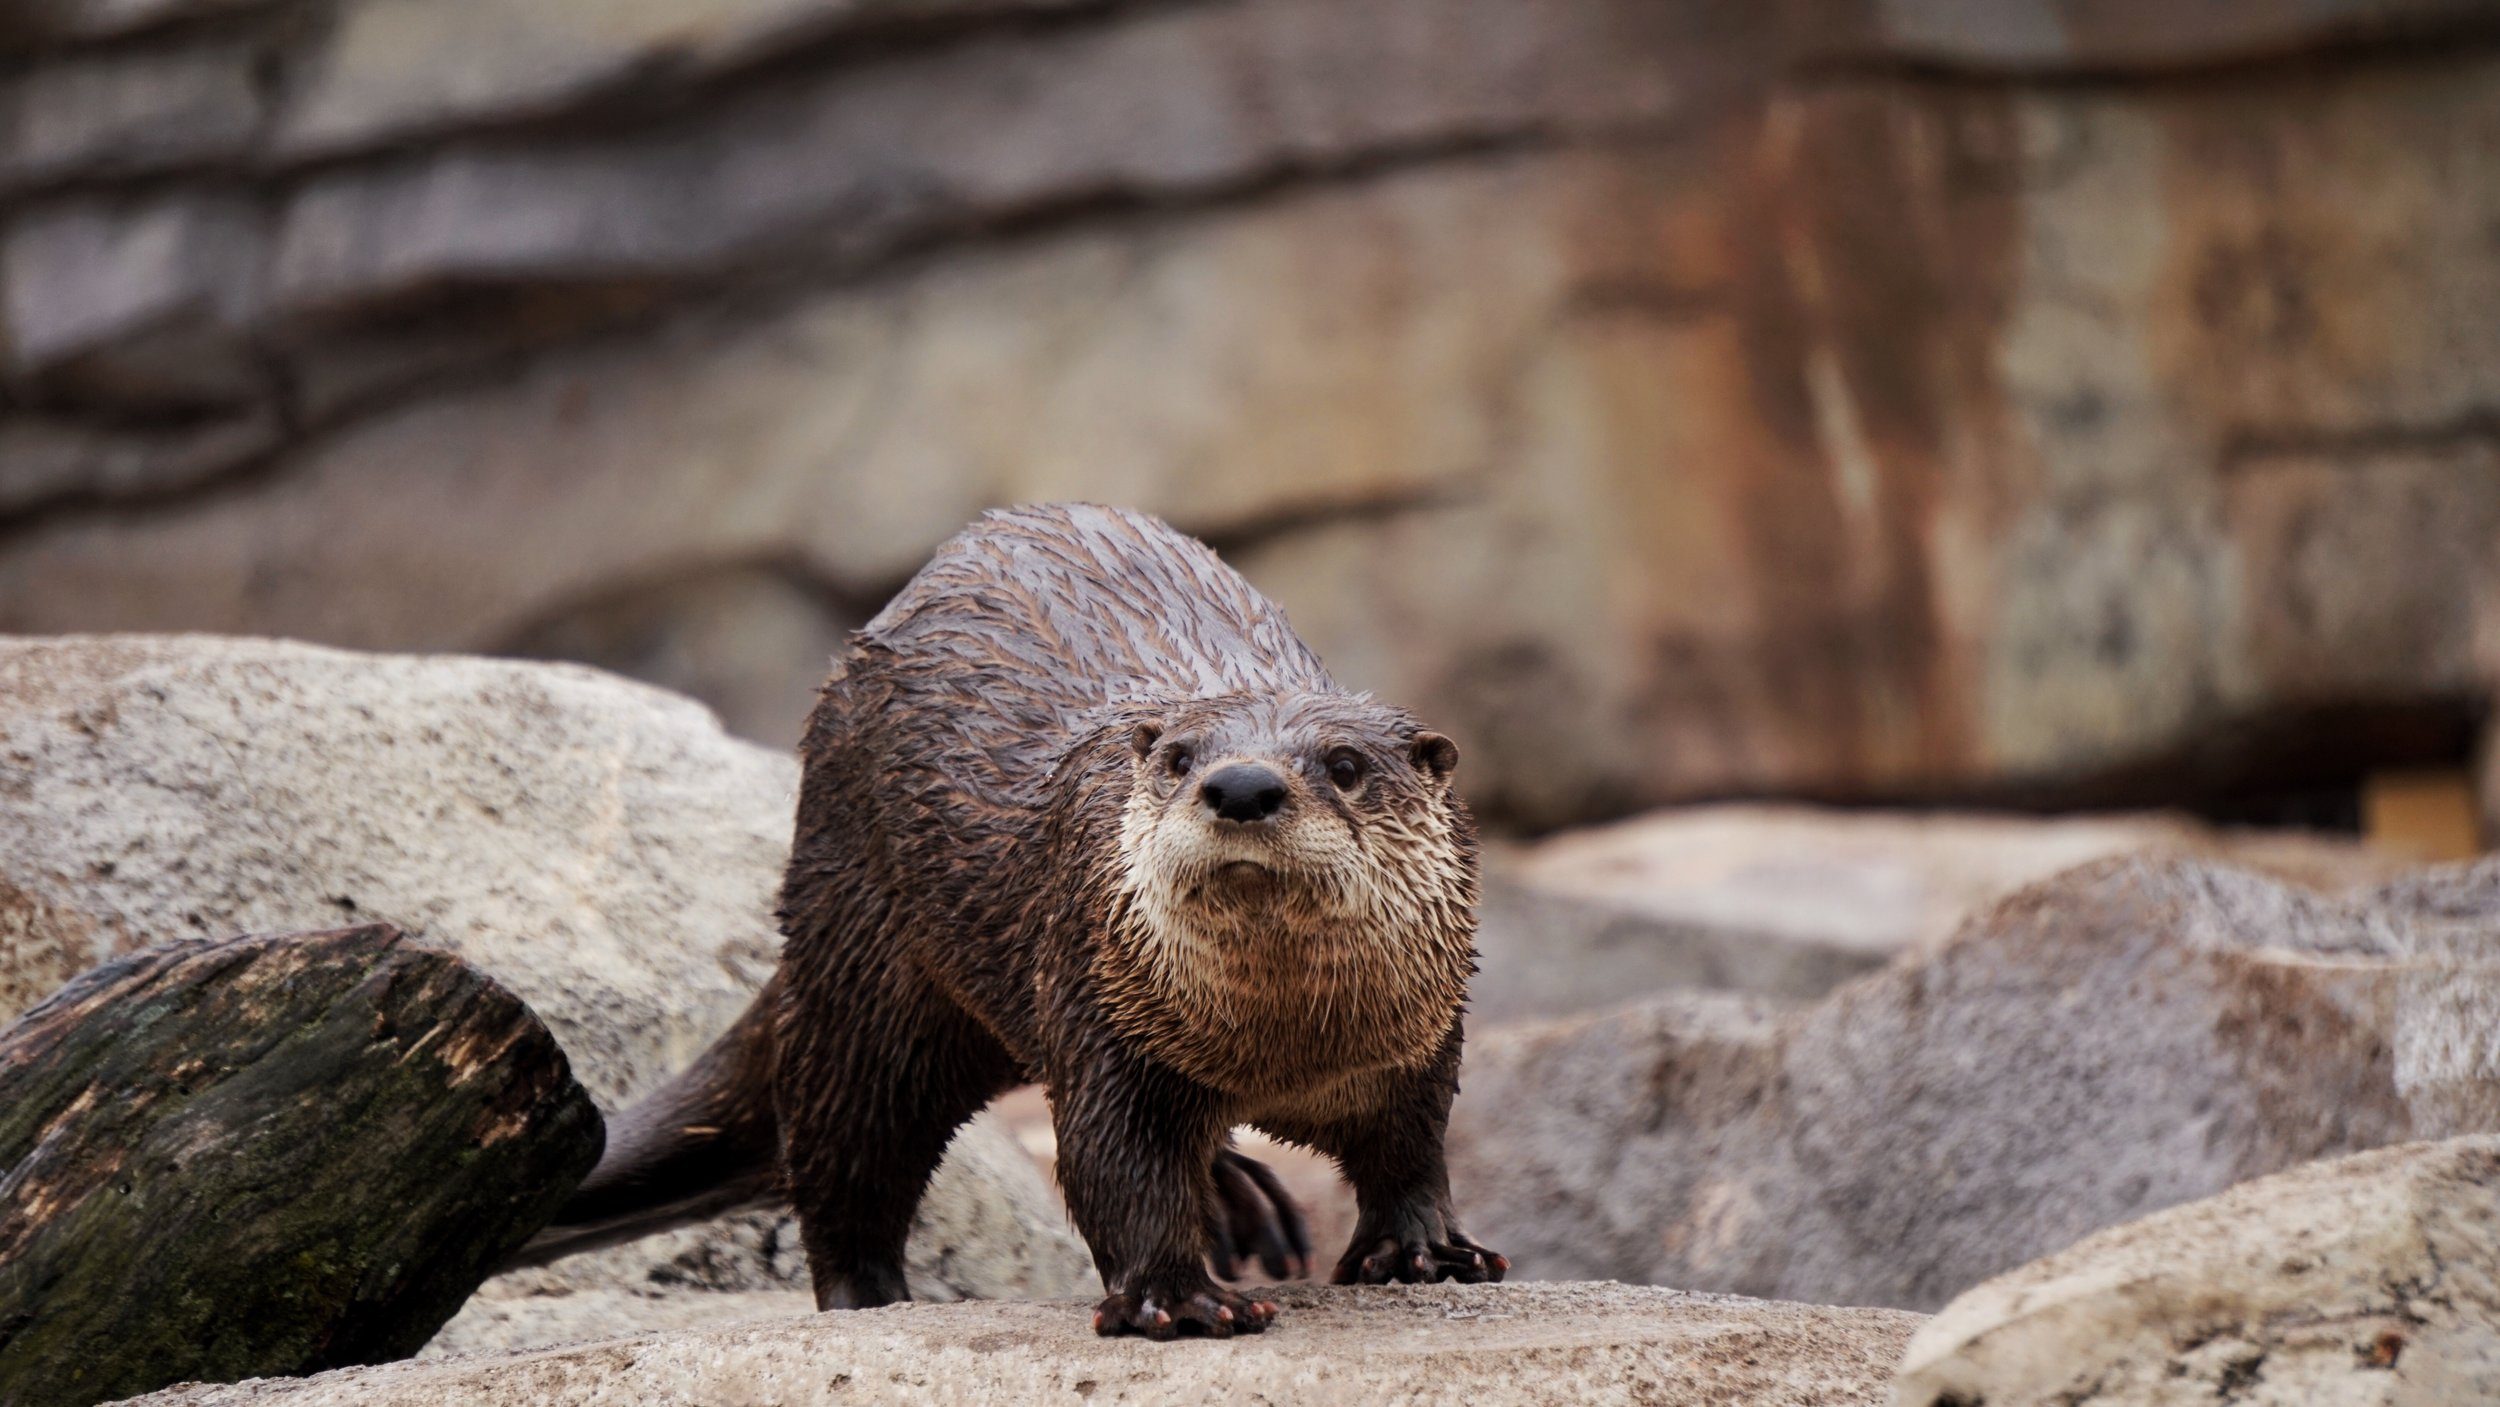 River otters are very friendly with one another, but not so much with outsiders.